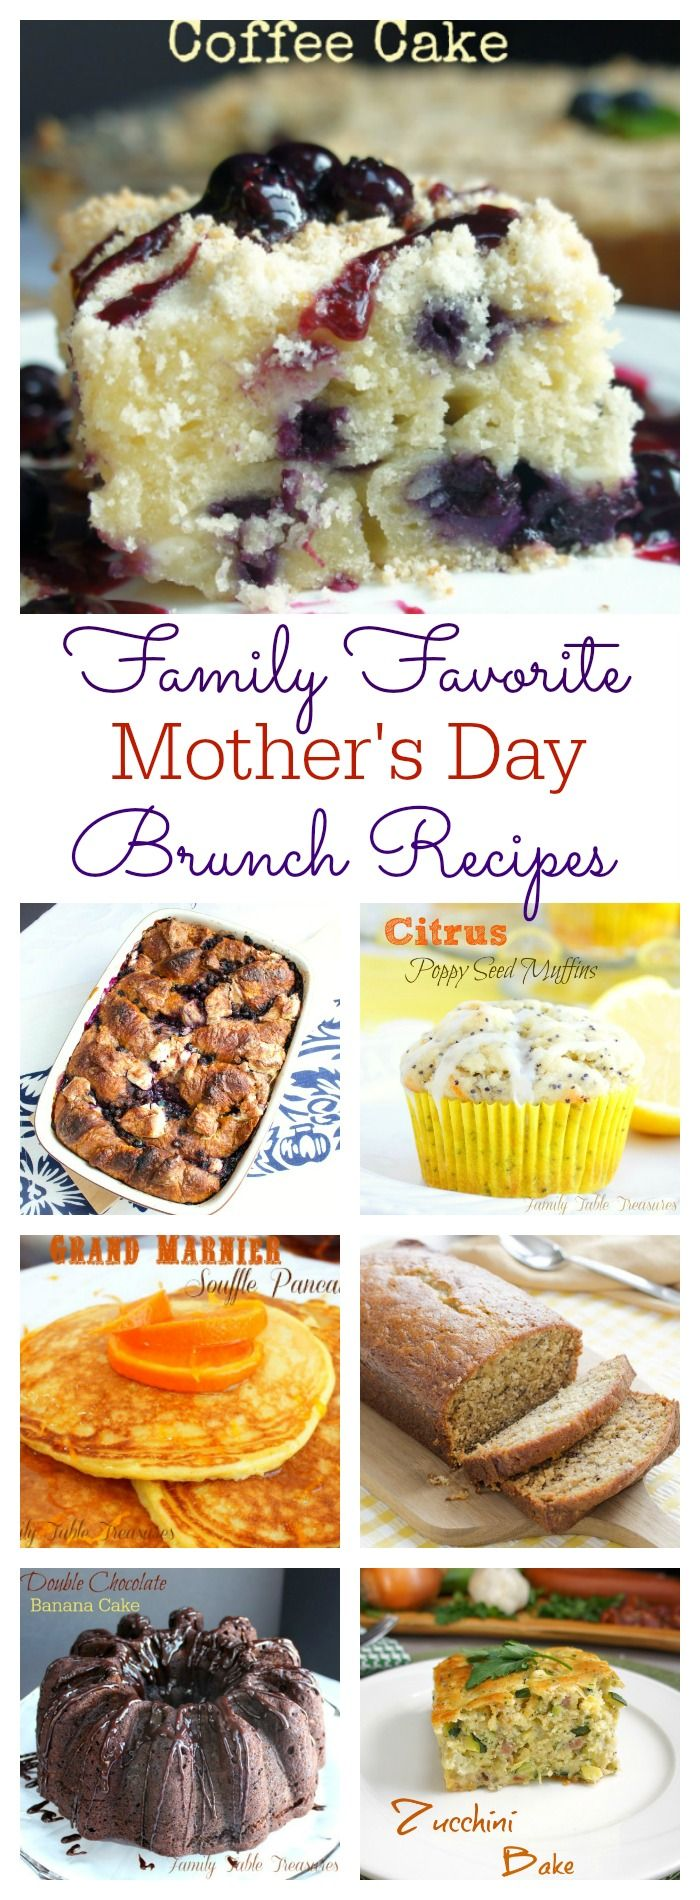 Whether you make her breakfast in bed or a full blow Mother's Day Brunch spread here are our Family Favorite Mother's Day Brunch Recipes to give you a hand!